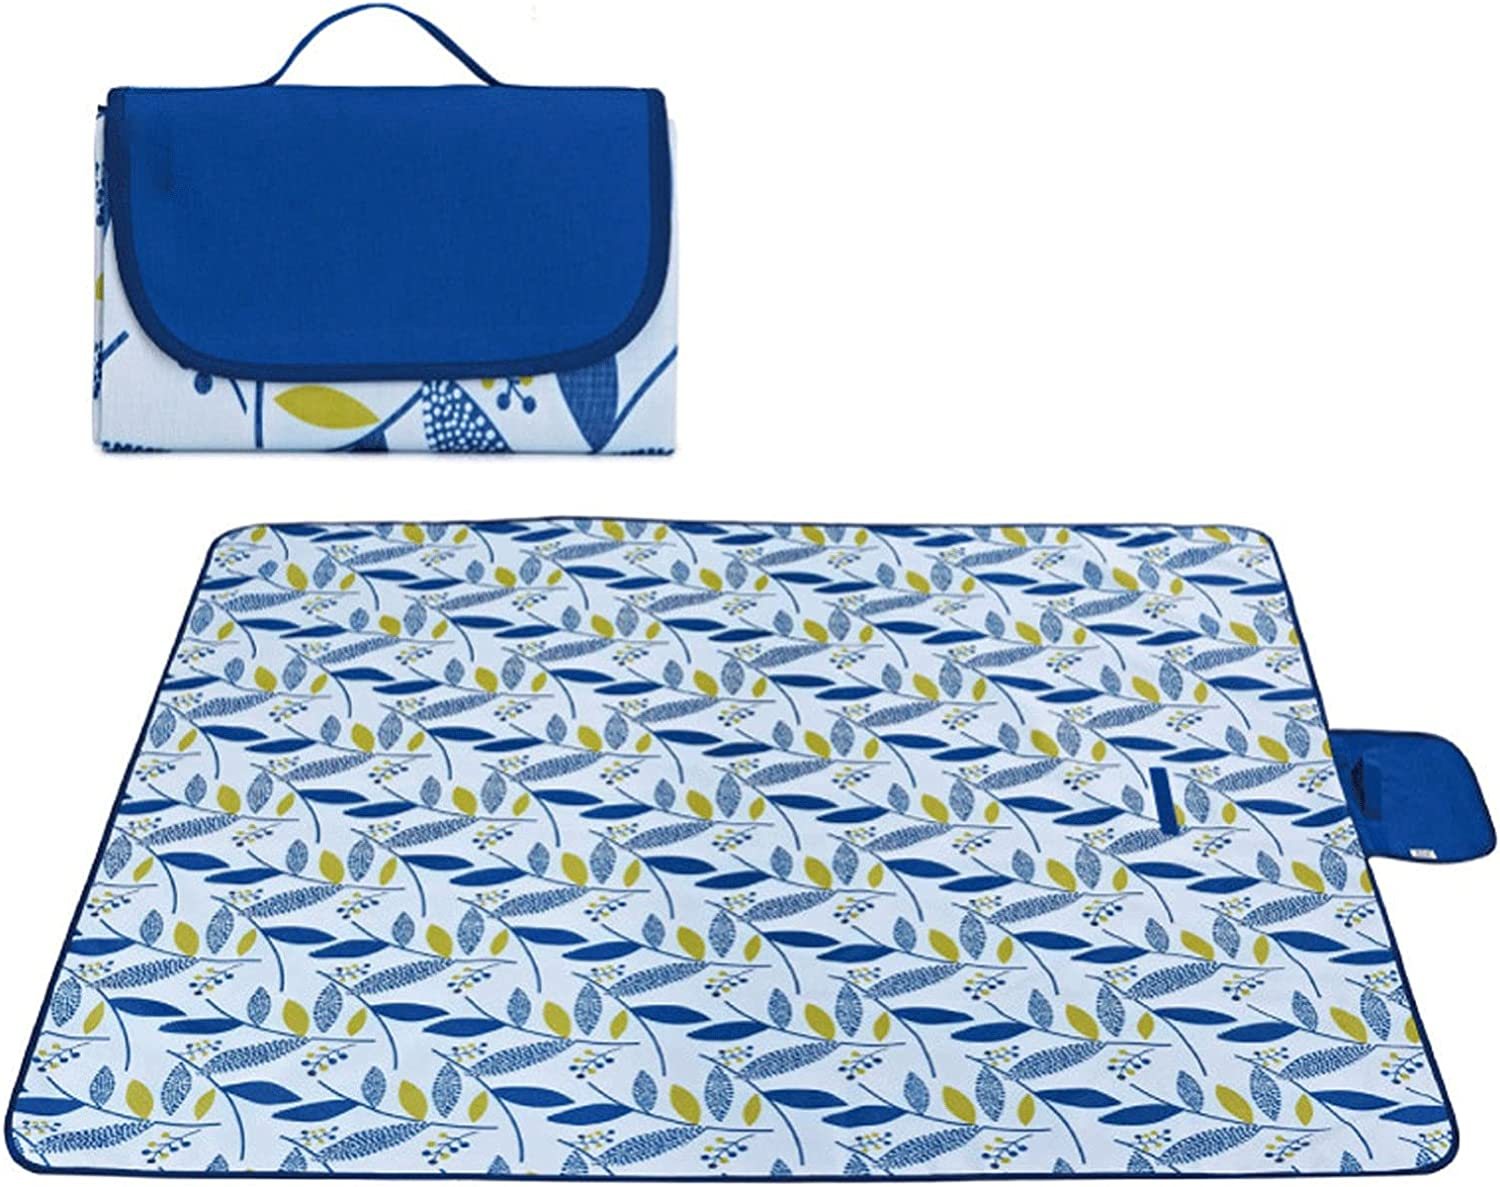 XIXIDIAN Special price Beach Blanket Large Sandproof Mat for 4-7 Excellence Adults